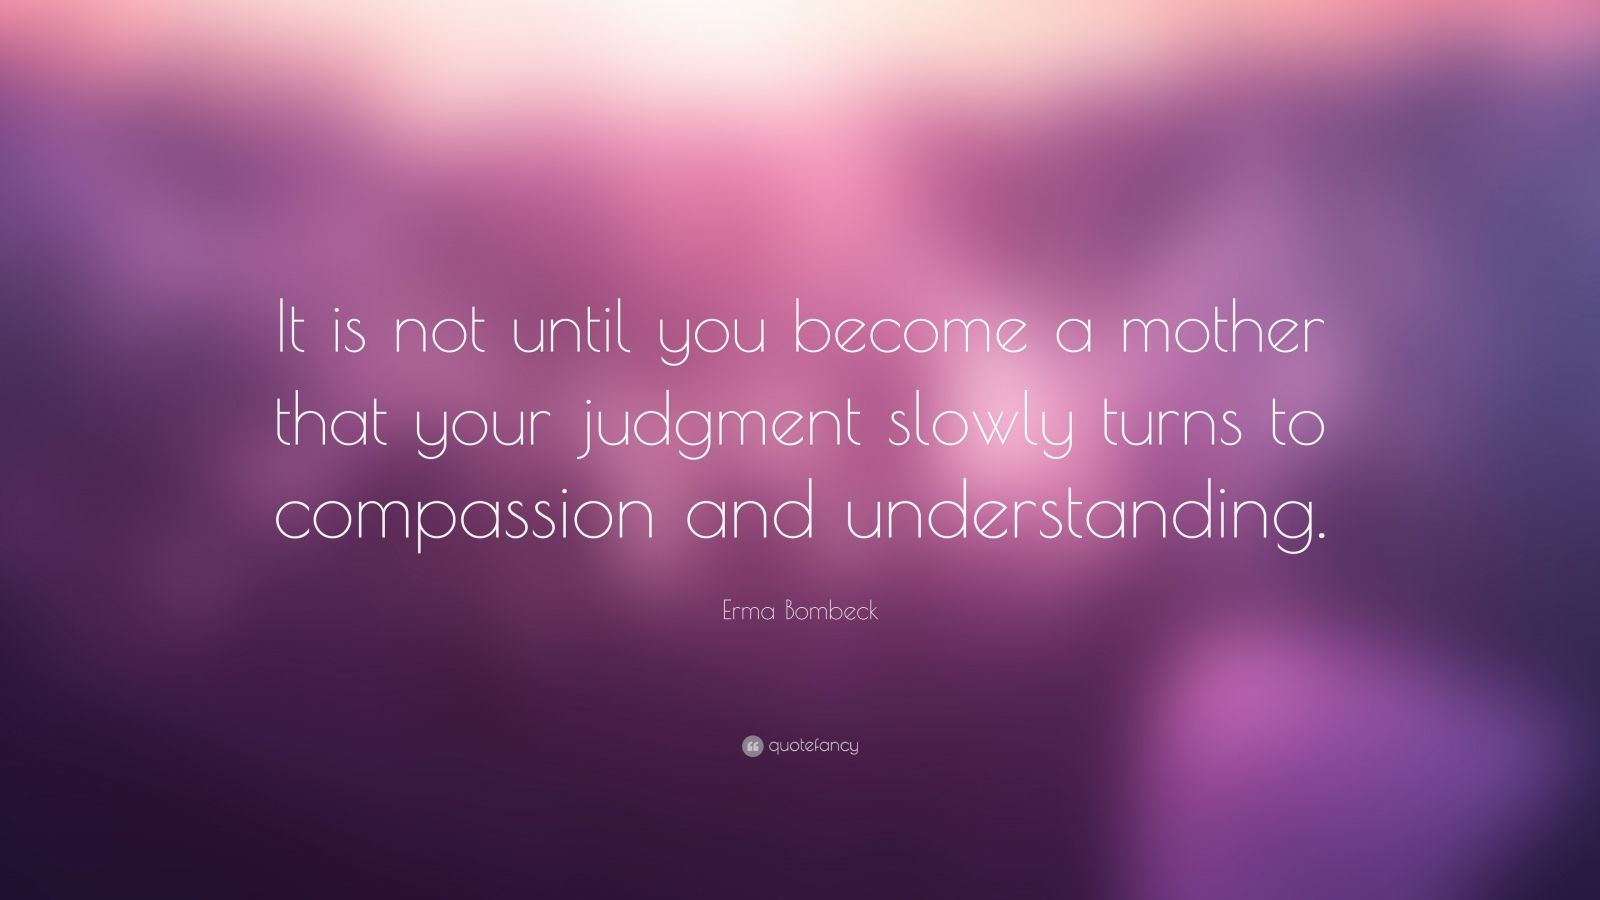 """Erma Bombeck Quote: """"It is not until you become a mother that your judgment slowly turns to compassion and understanding."""""""